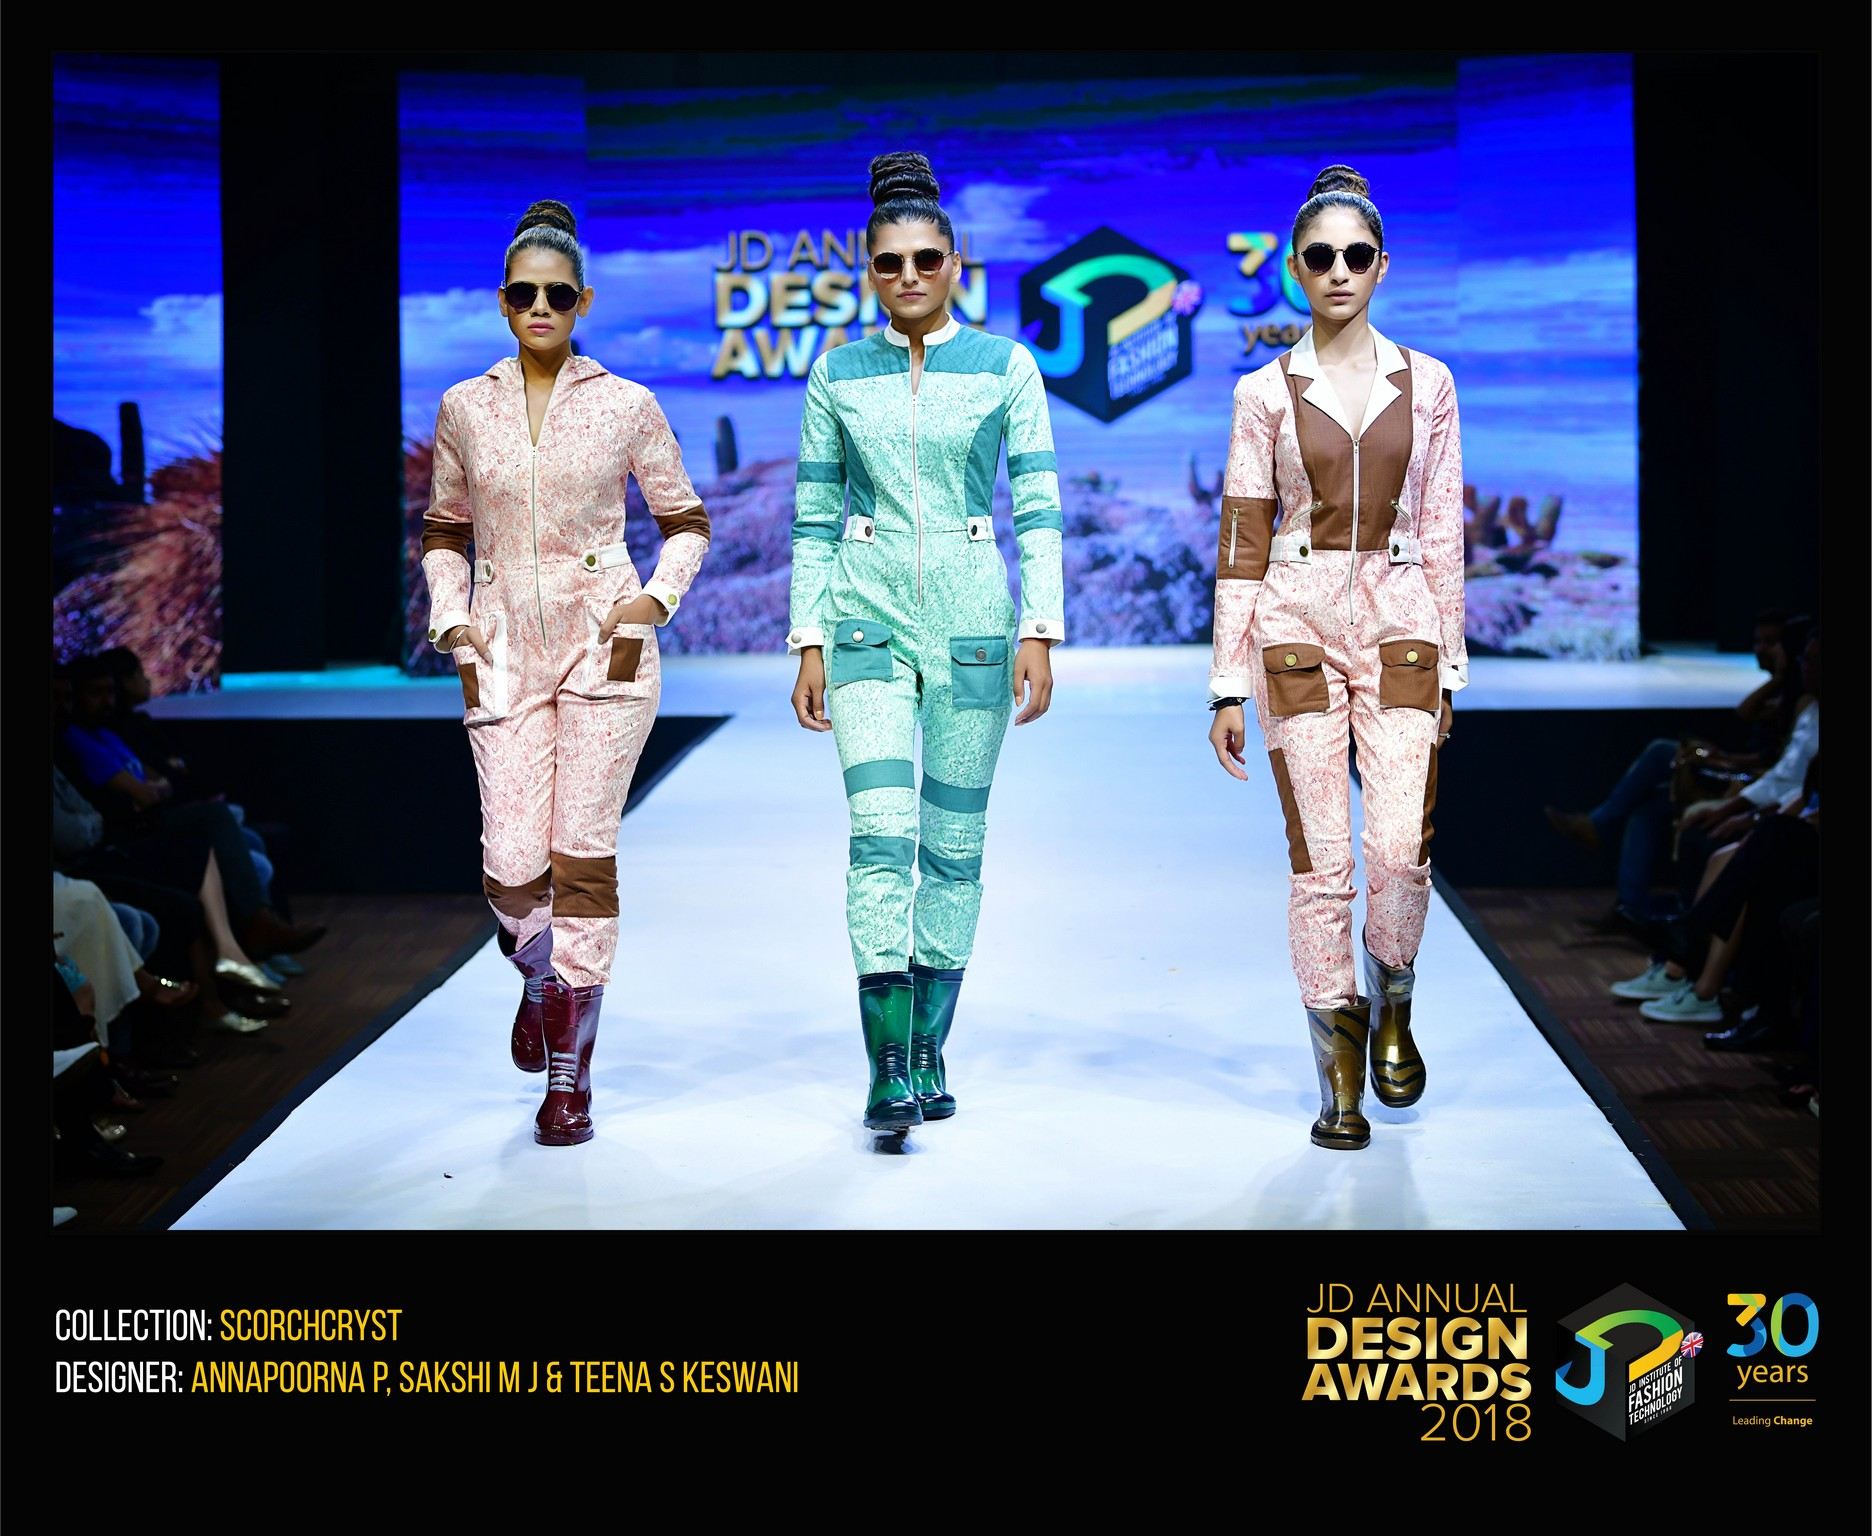 Scorch Cryst – Change – JD Annual Design Awards 2018 | Designer: Annapoorna, Ishika and Teena | Photography : Jerin Nath (@jerin_nath) scorch cryst - SCORCHCRYST 10 - Scorch Cryst – Change – JD Annual Design Awards 2018